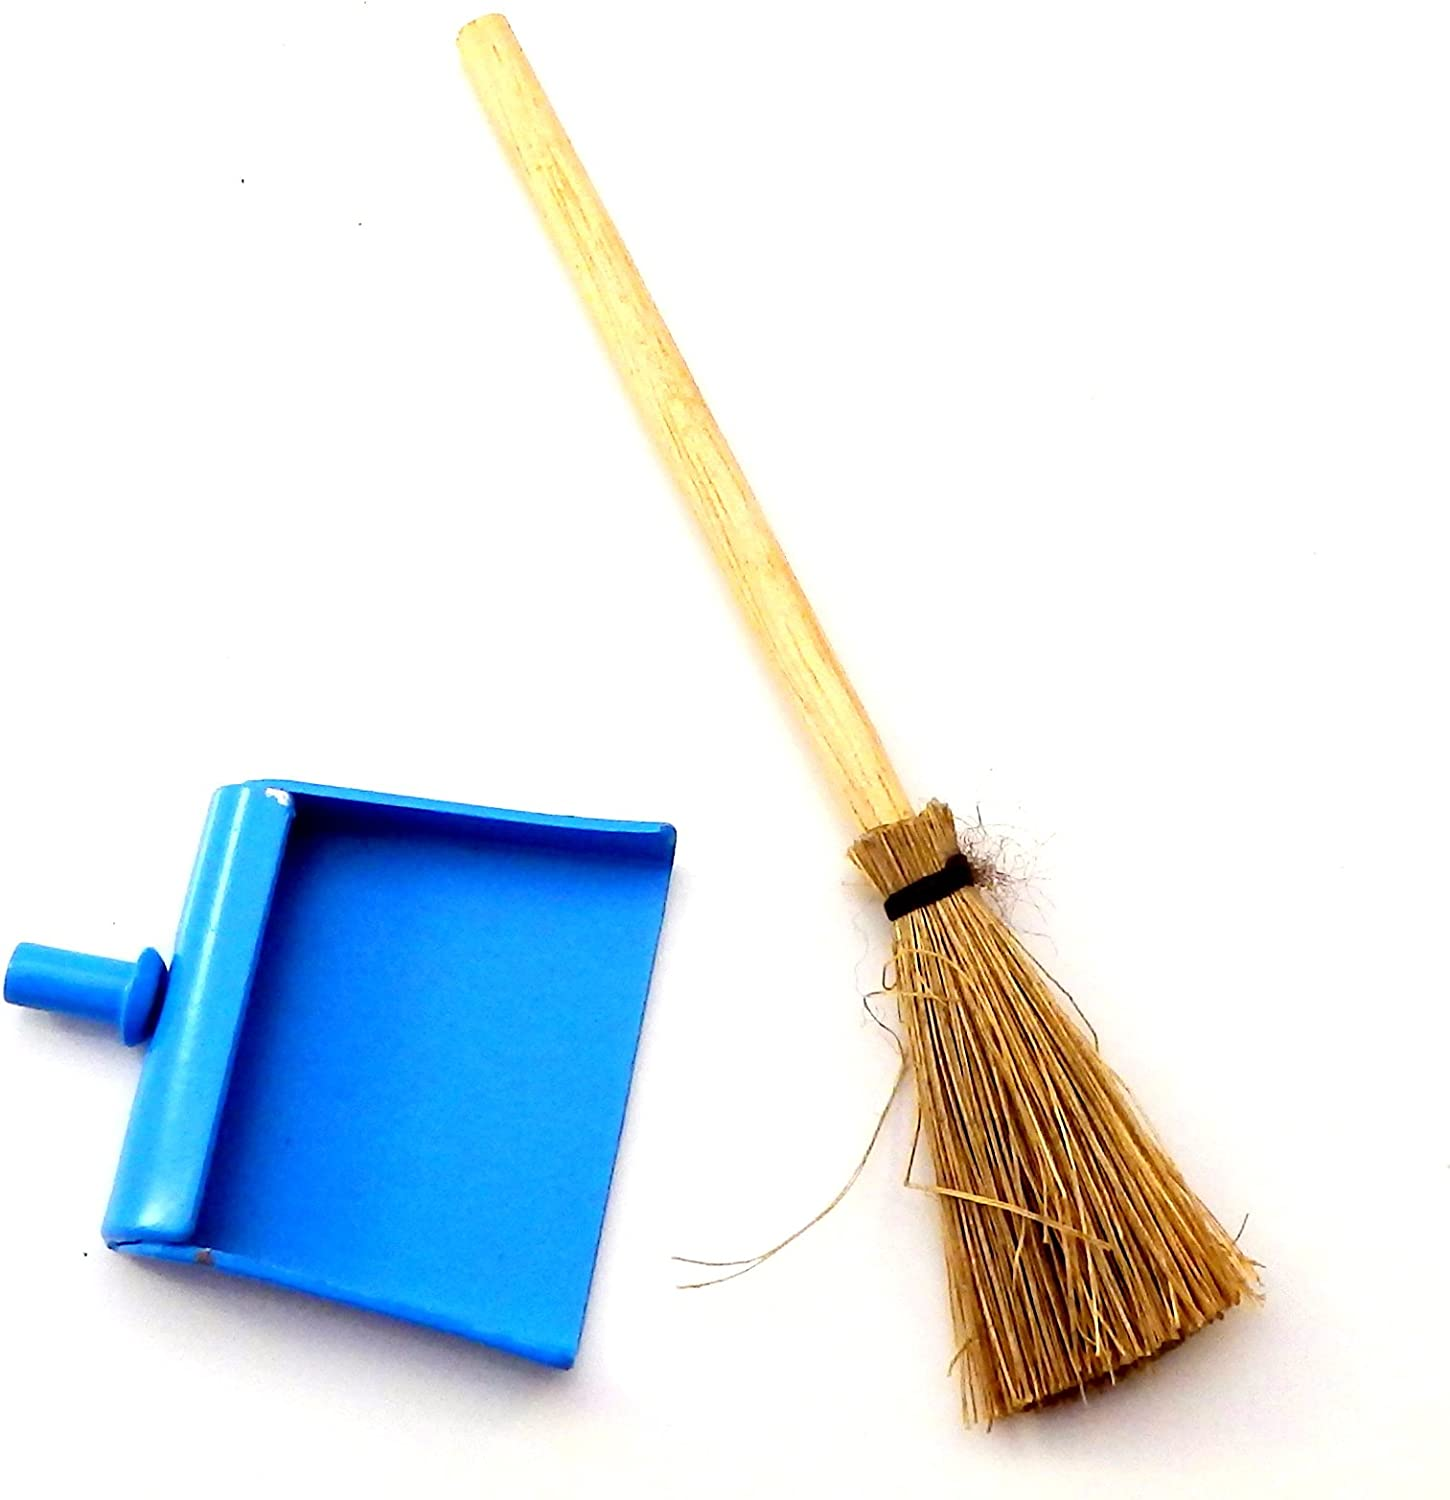 Dolls House Miniature Broom And Dustpan With Metal Handles